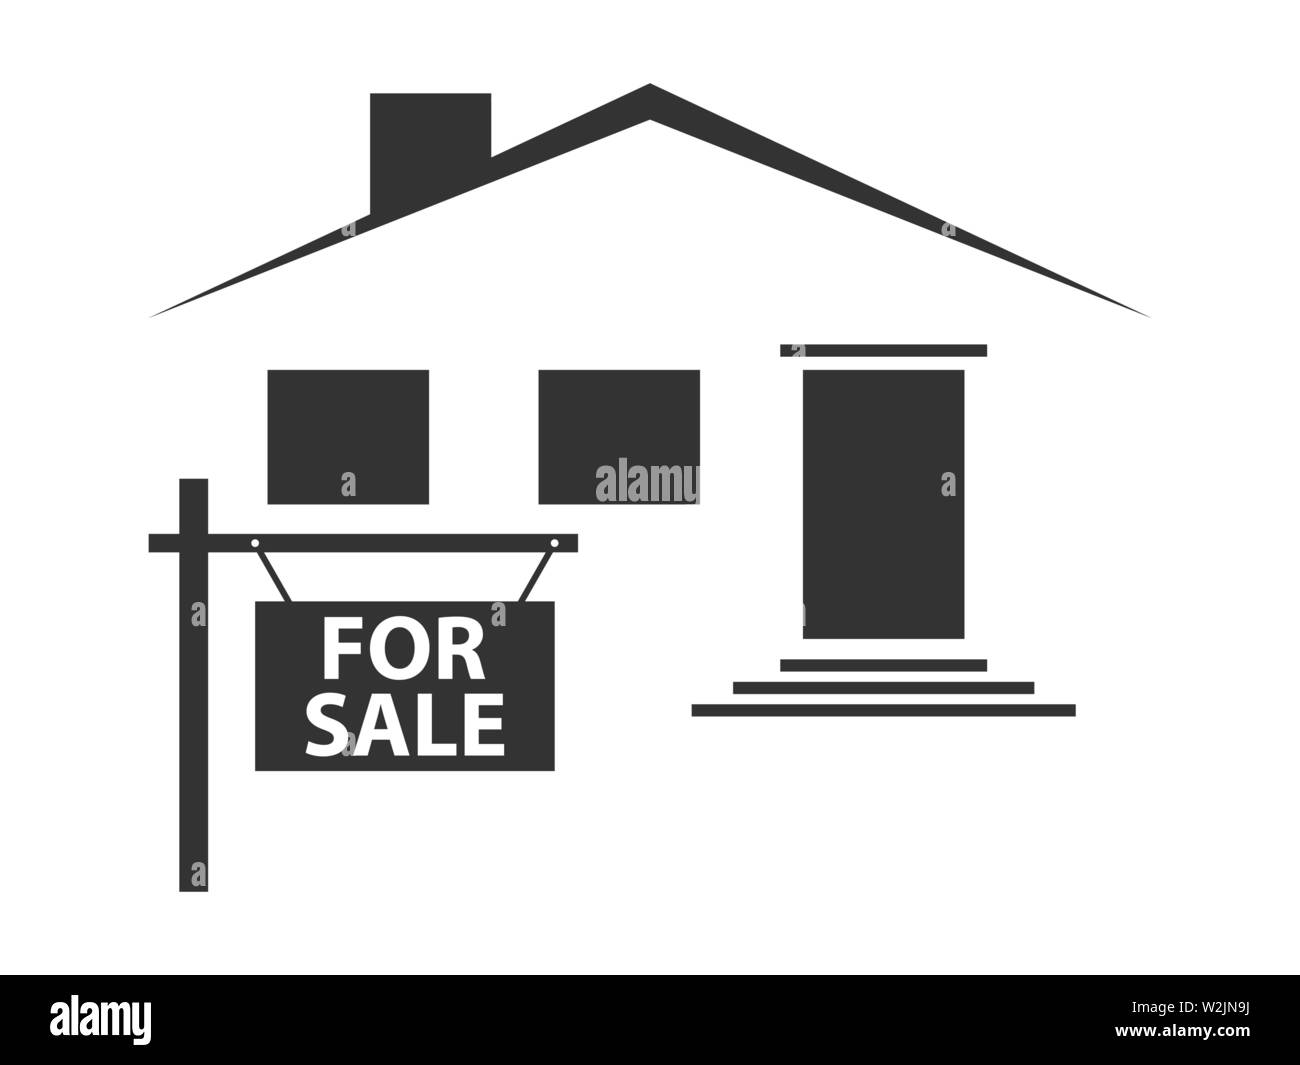 Silhouette of a house with a signboard for sale. Black icon on white background. Vector illustration - Stock Image